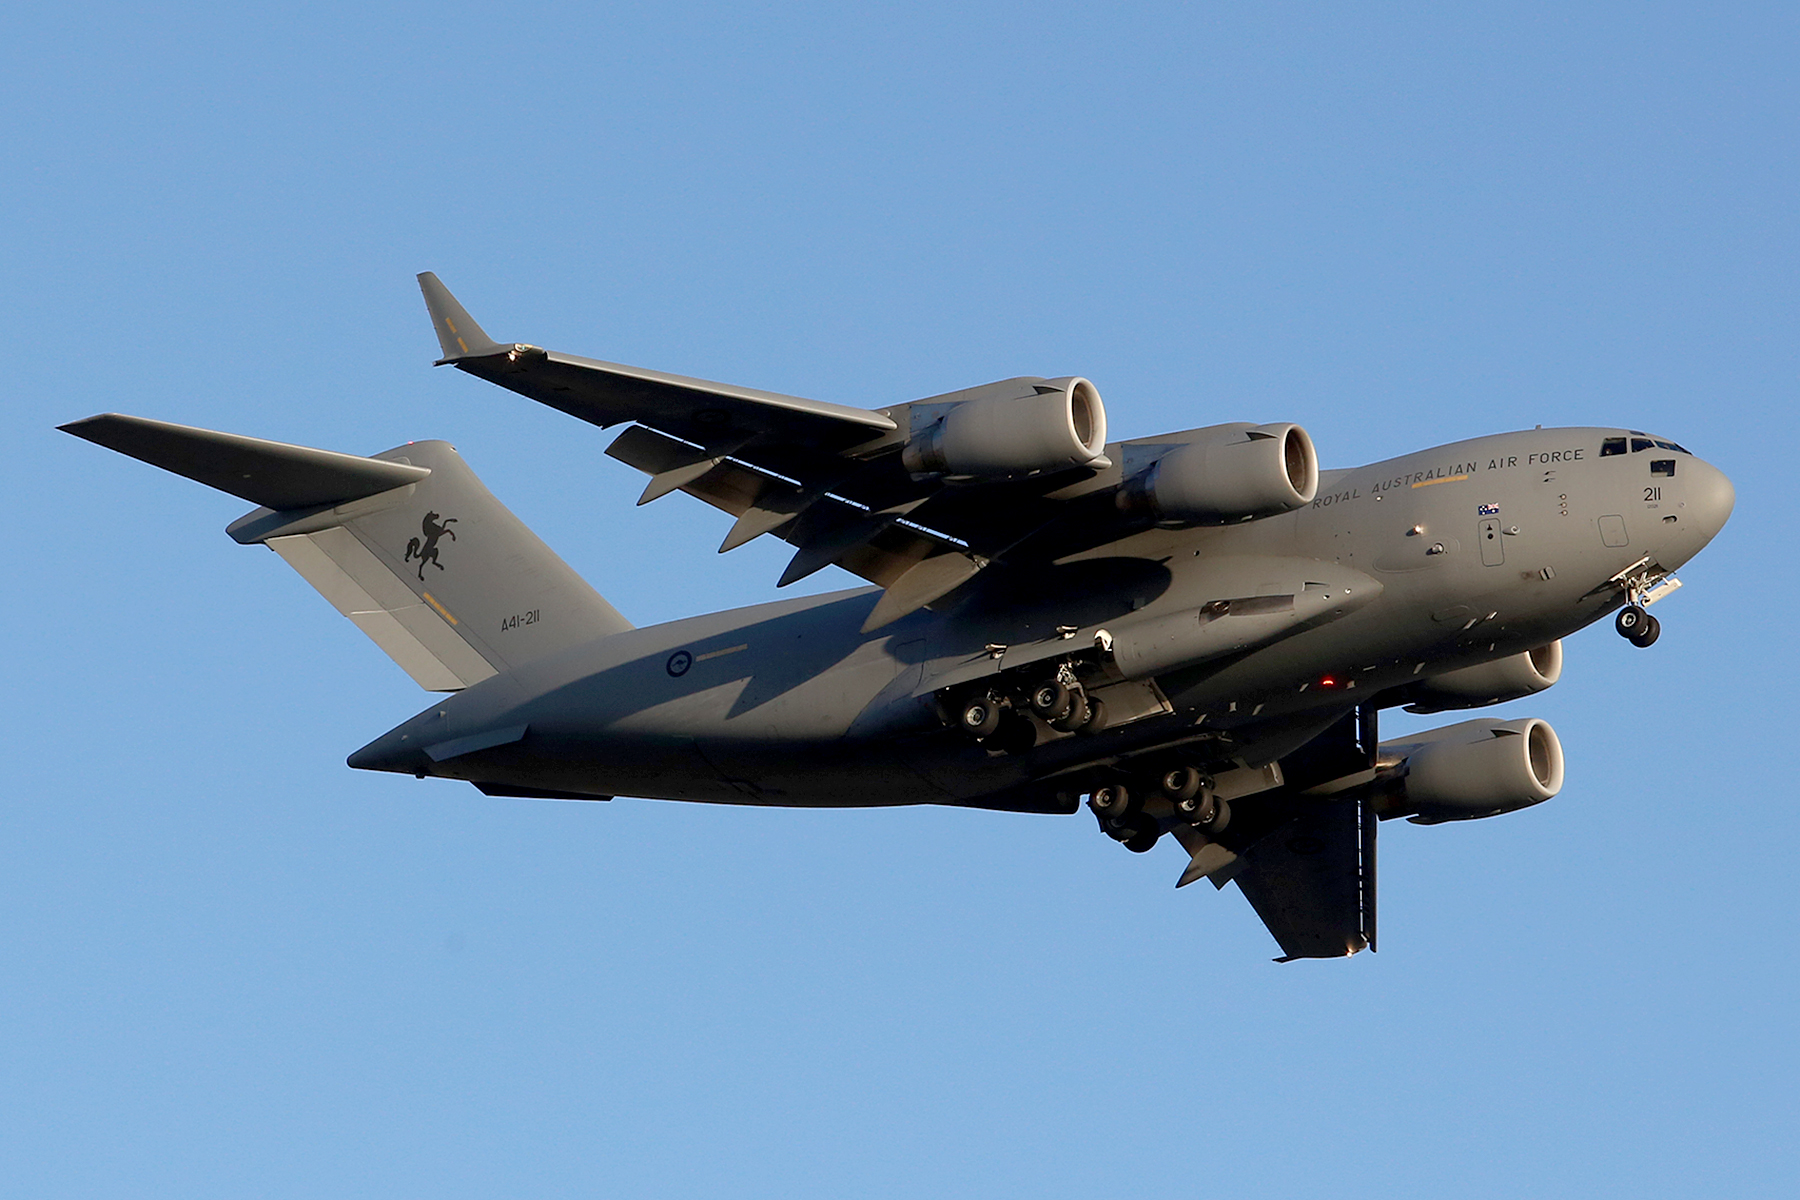 A41-211 Boeing C-17A Globemaster III (MSN AUS-6) at Perth Airport – Mon 27 Oct 2014.